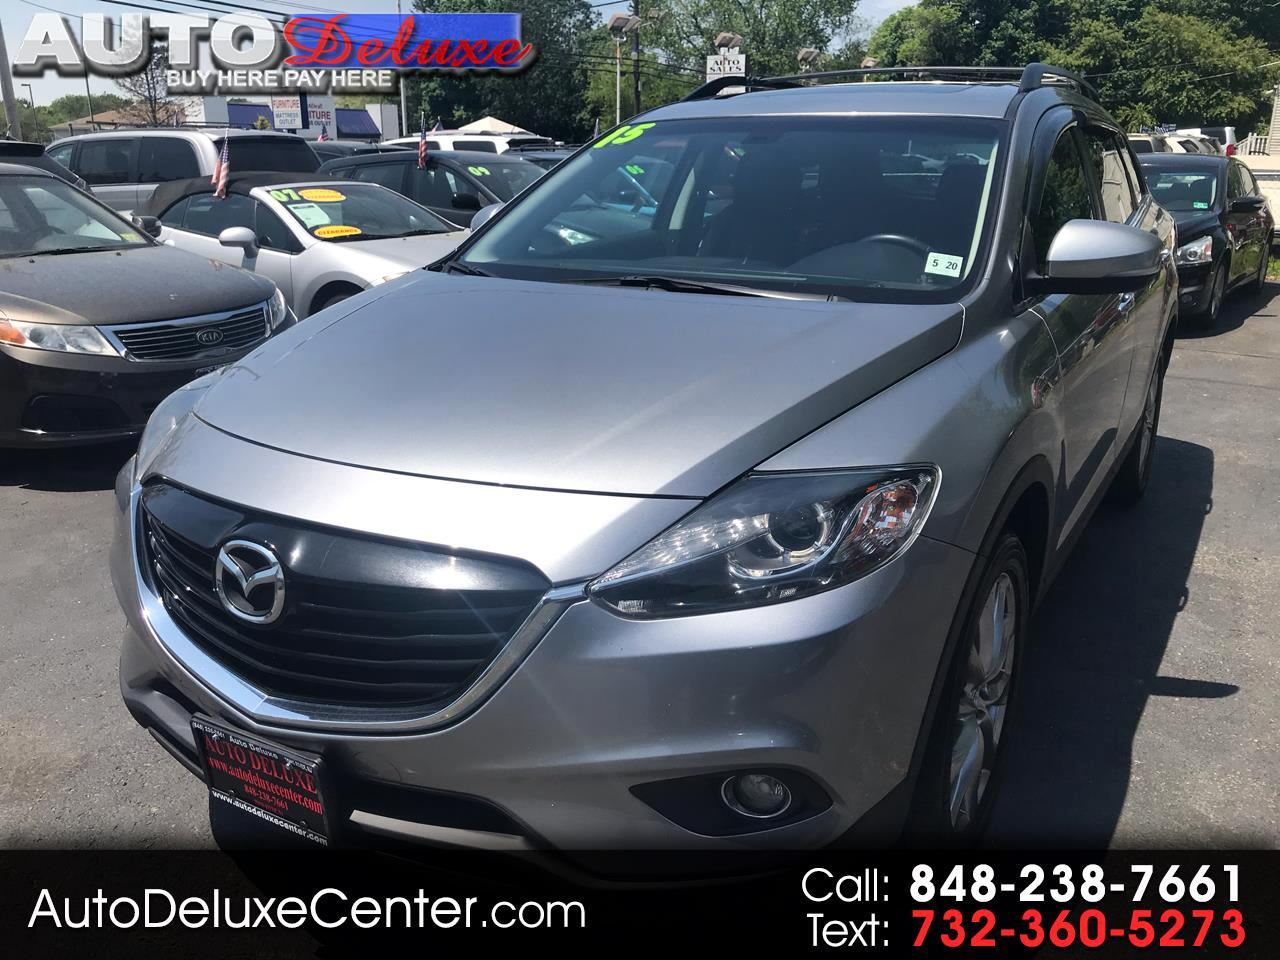 2015 Mazda CX-9 AWD 4dr Grand Touring